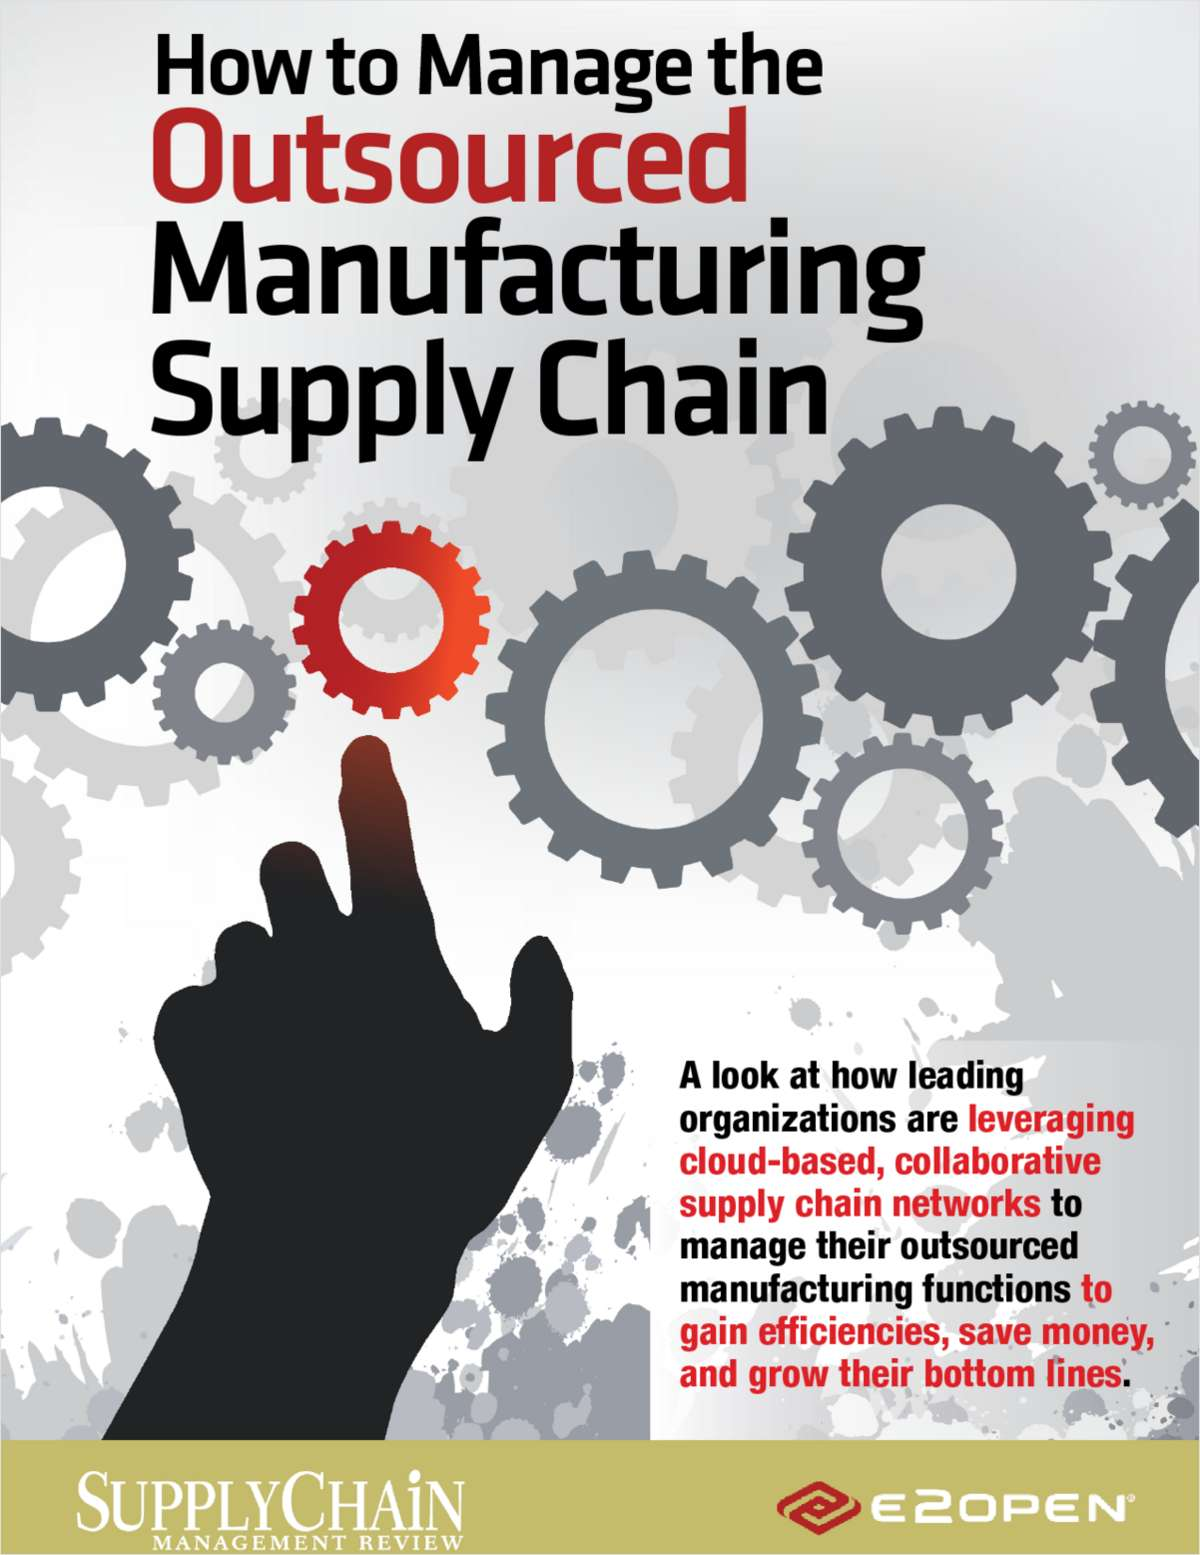 How to Manage the Outsourced Manufacturing Supply Chain